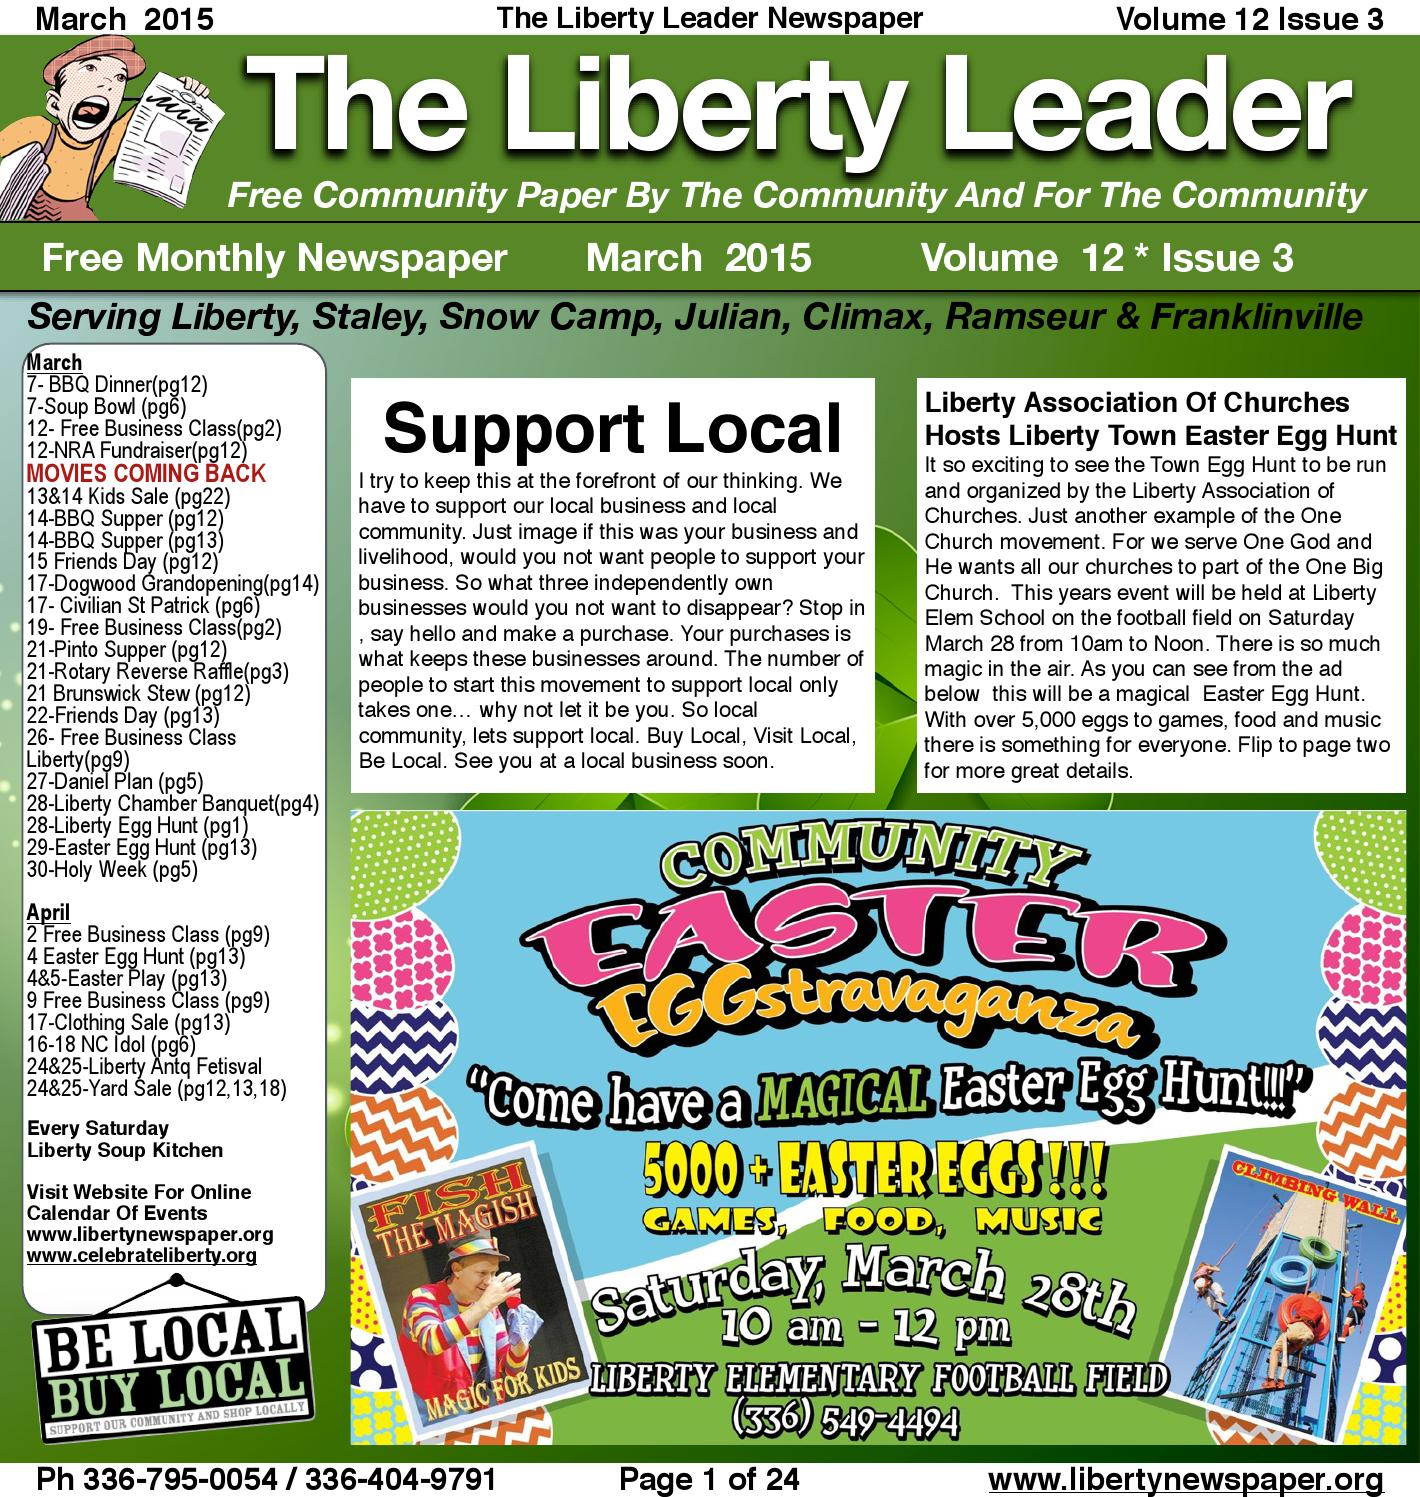 March 2015 Liberty Leader Newspaper By Kevin Bowman (page